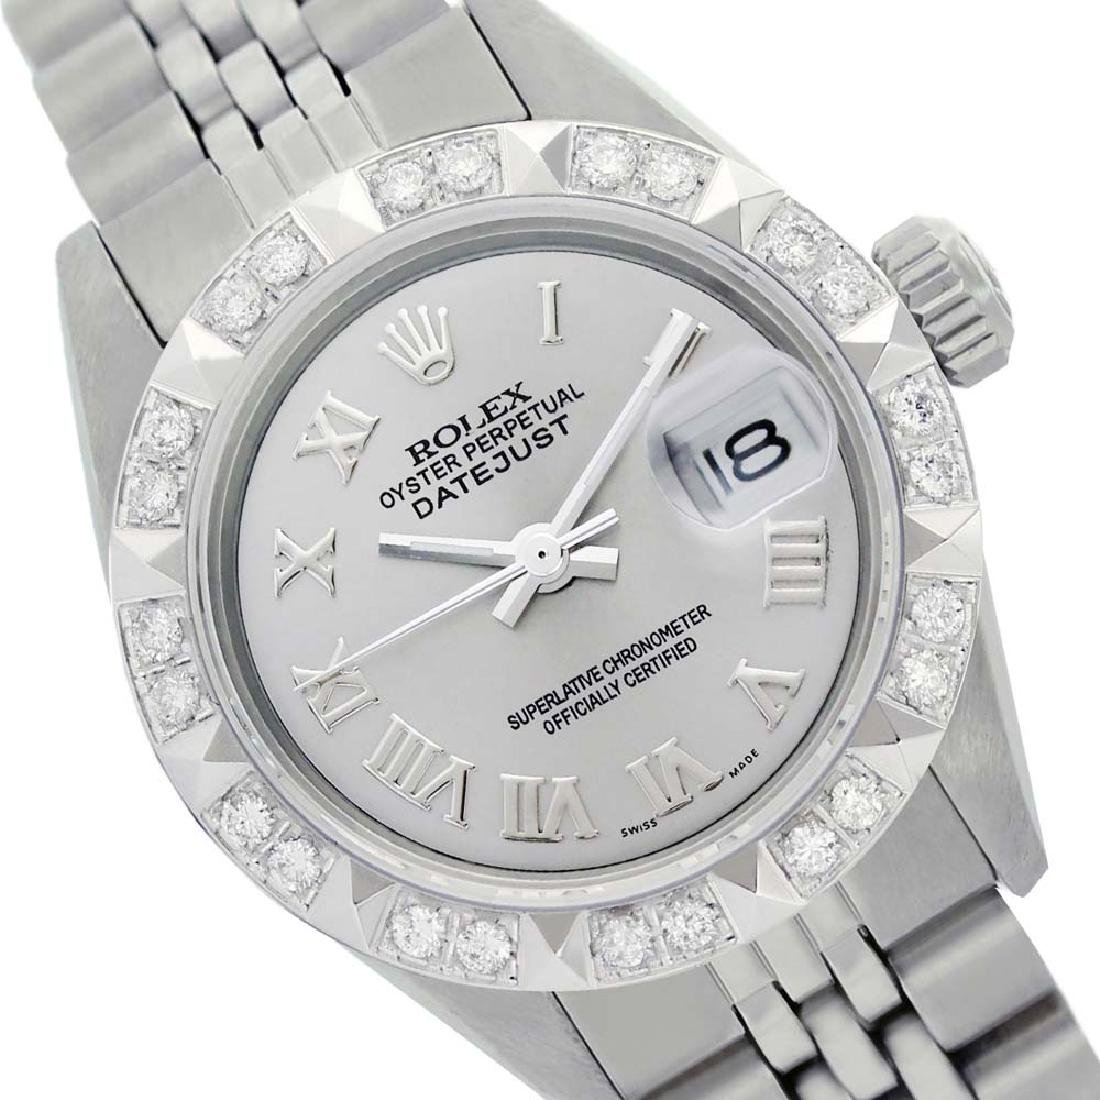 Rolex Ladies Stainless Steel, Roman Dial with Pyrimid